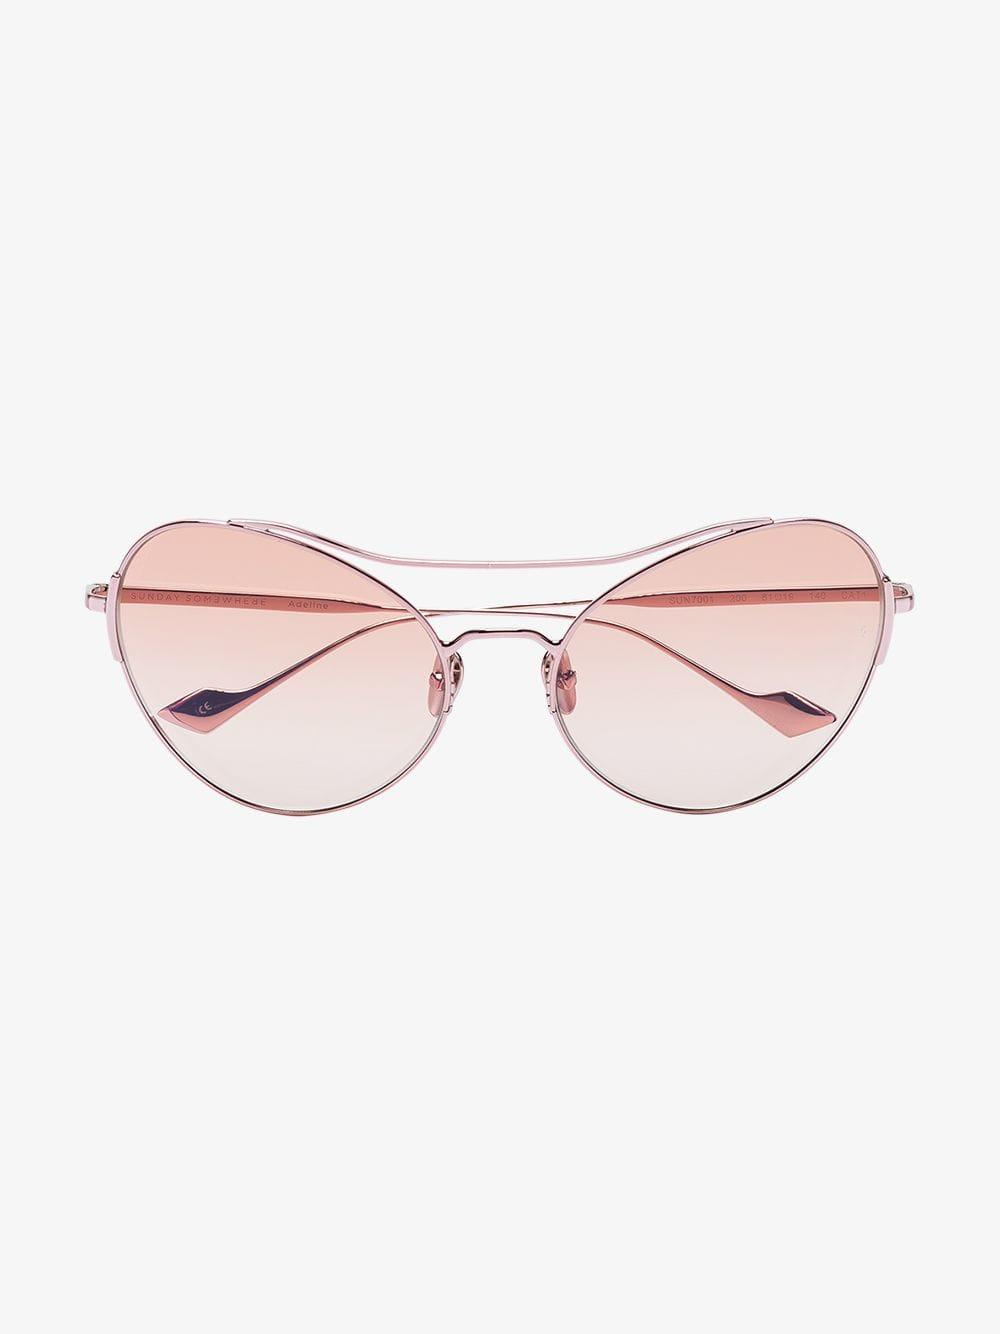 6e6188358e1b2 Sunday Somewhere Pink Adeline Oversized Metal Sunglasses in Pink - Lyst